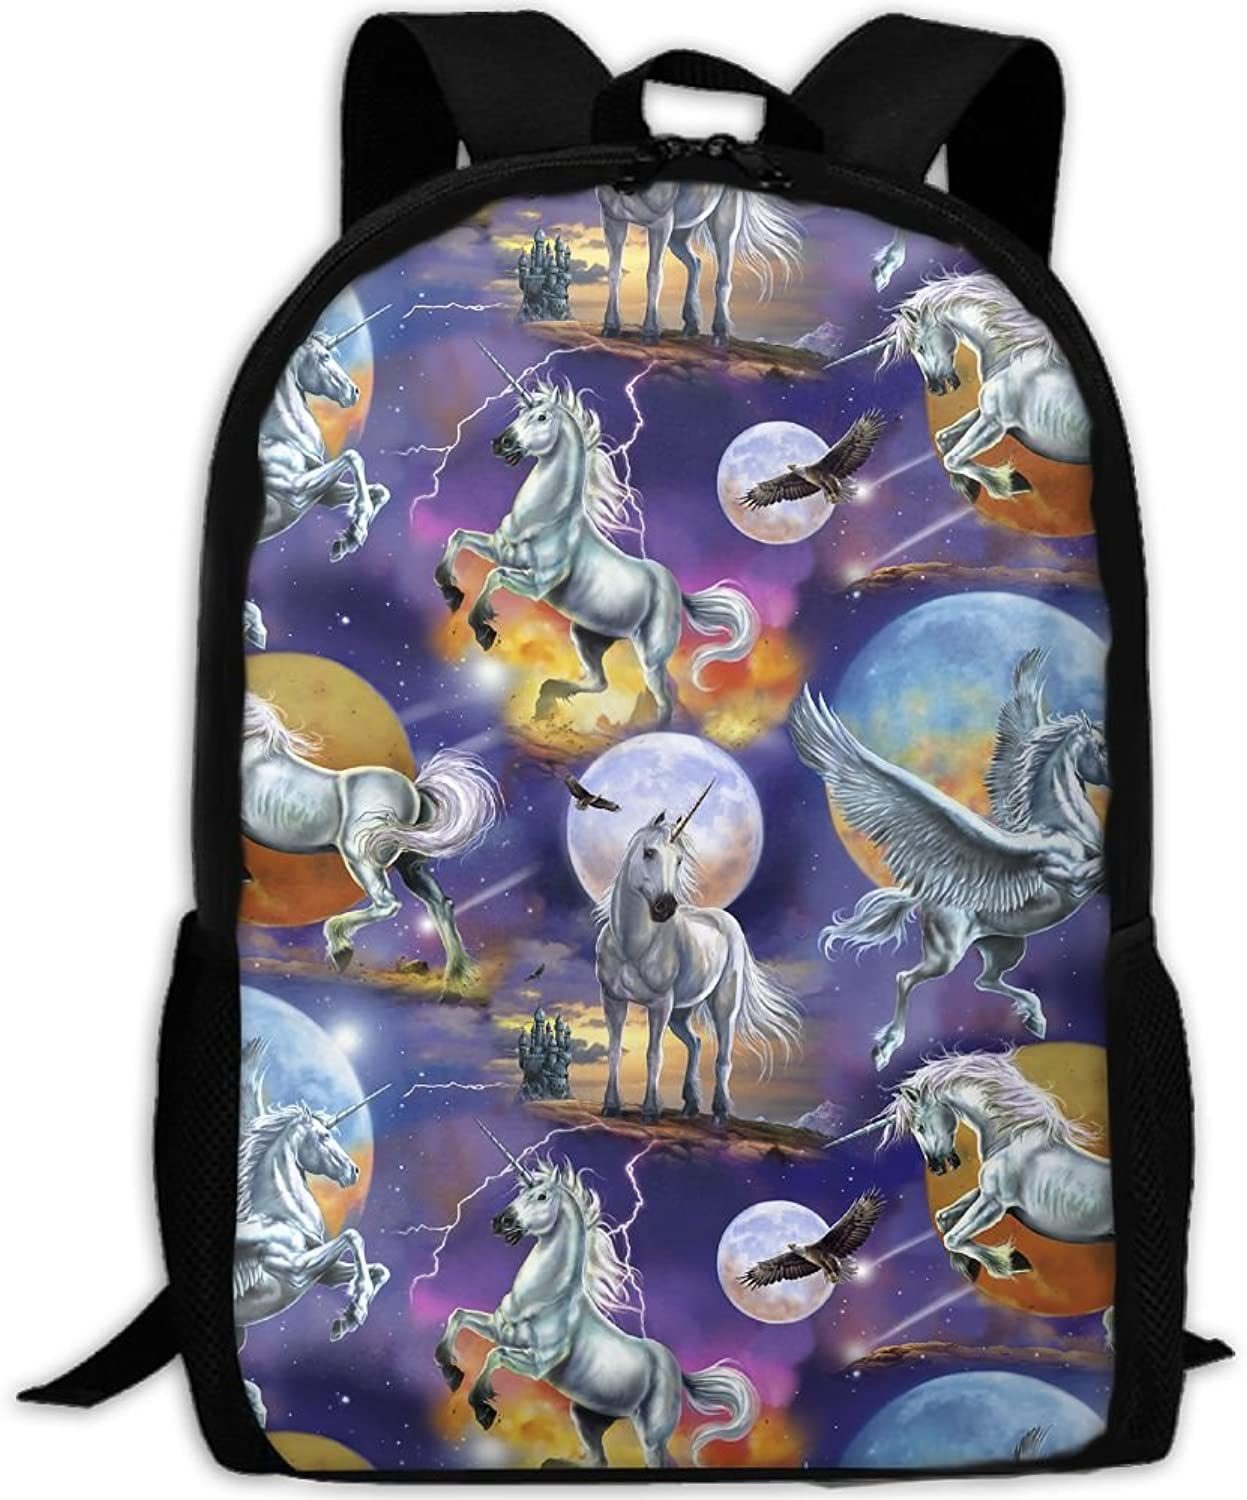 Adult Backpack Moon Unicorn College Daypack Oxford Bag Unisex Business Travel Sports Bag With Adjustable Strap